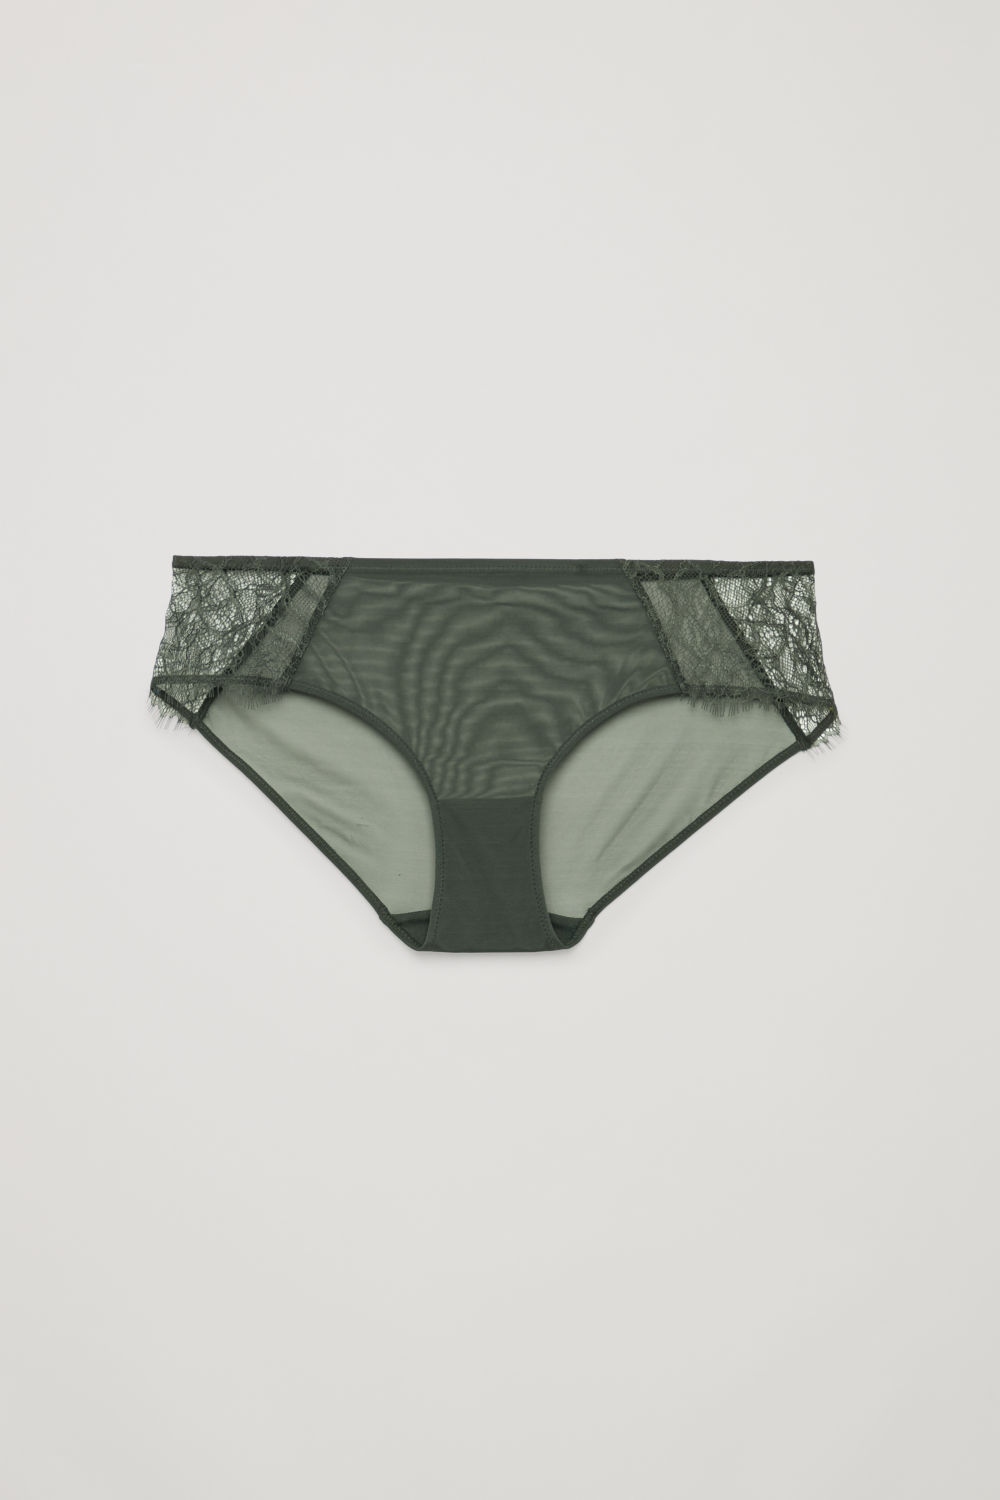 코스 언더웨어 하의 COS LACE-DETAILED MESH BRIEFS,Khaki green